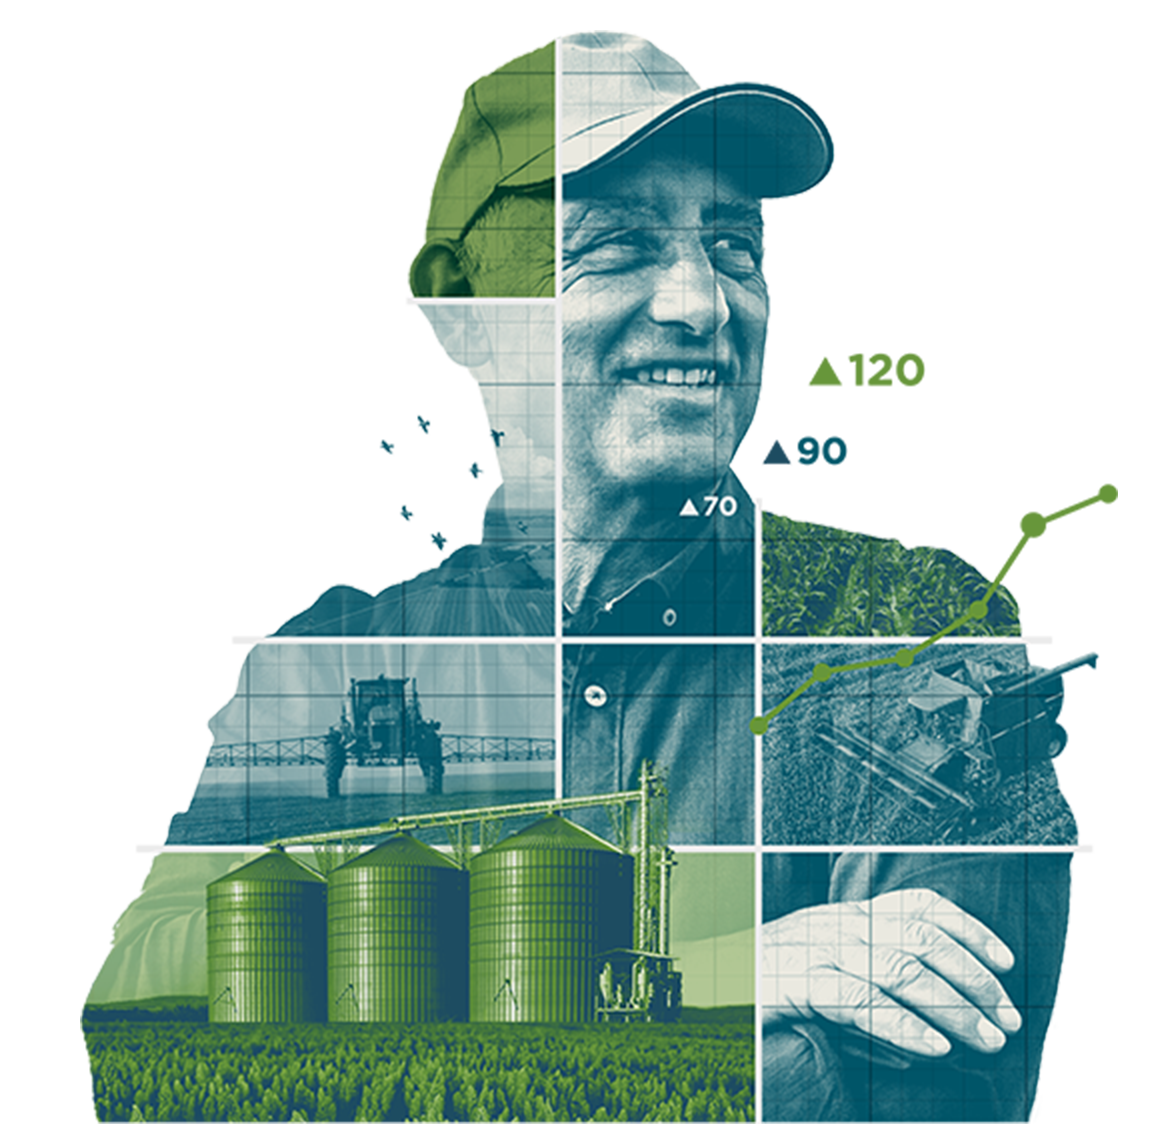 Composite image of a farmer with equipment and field snapshots